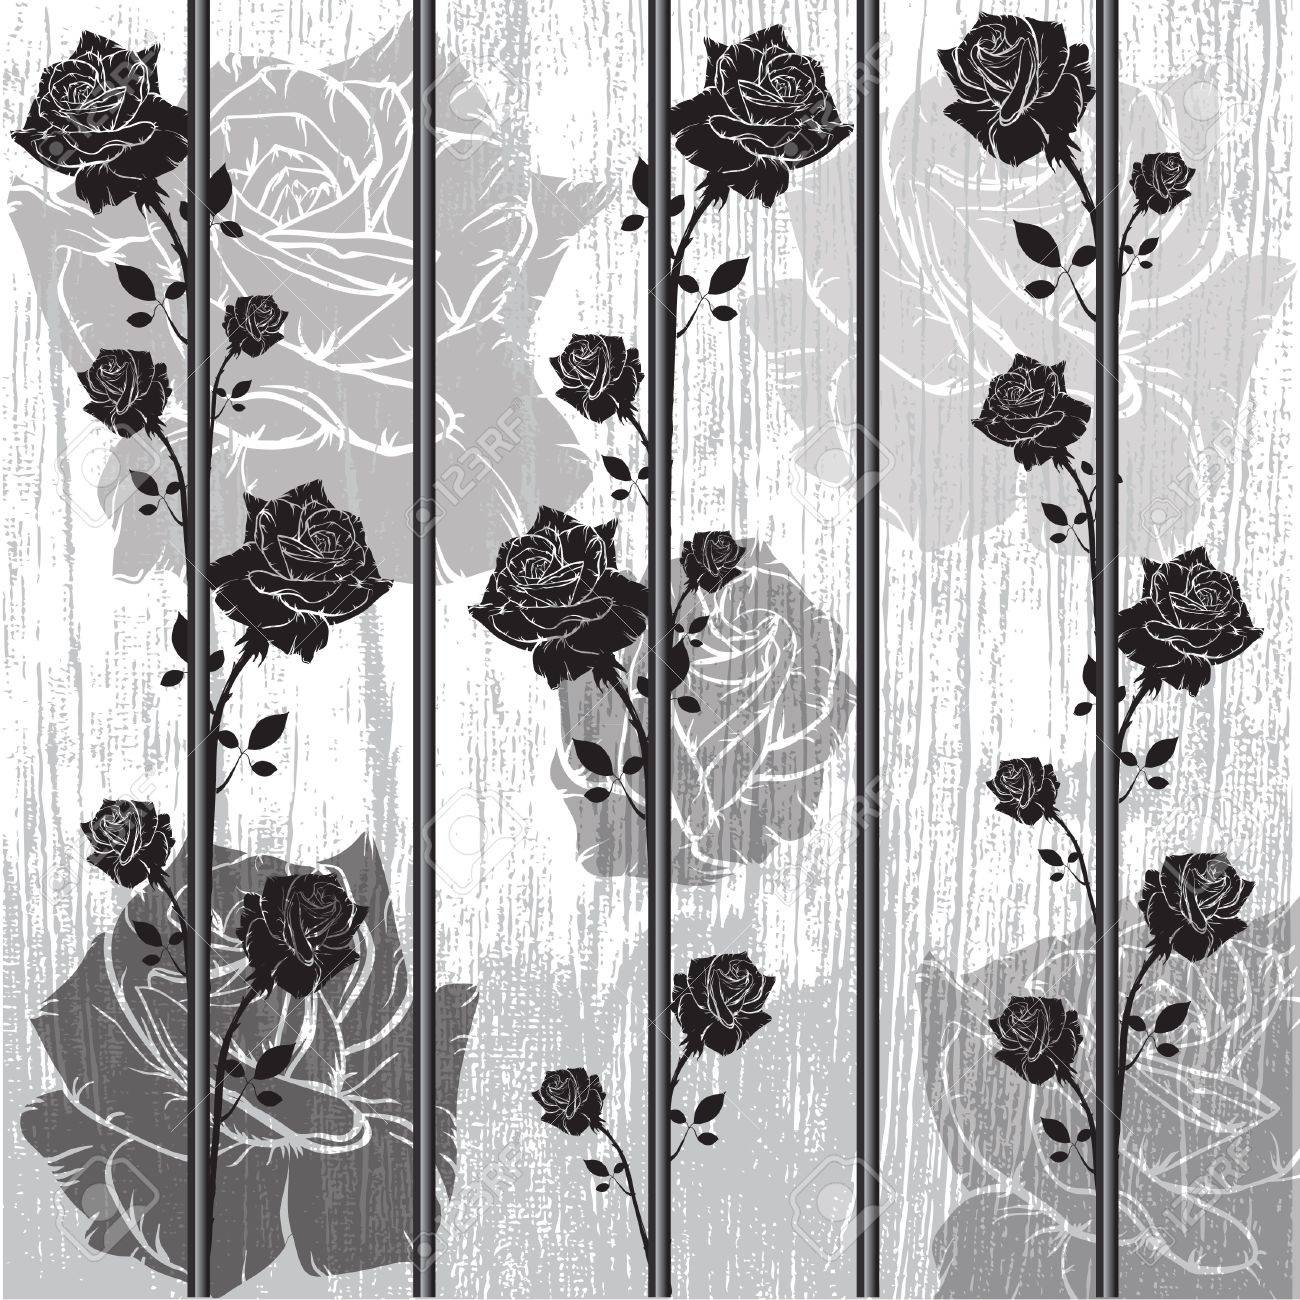 graphic black roses wall design - 19115325